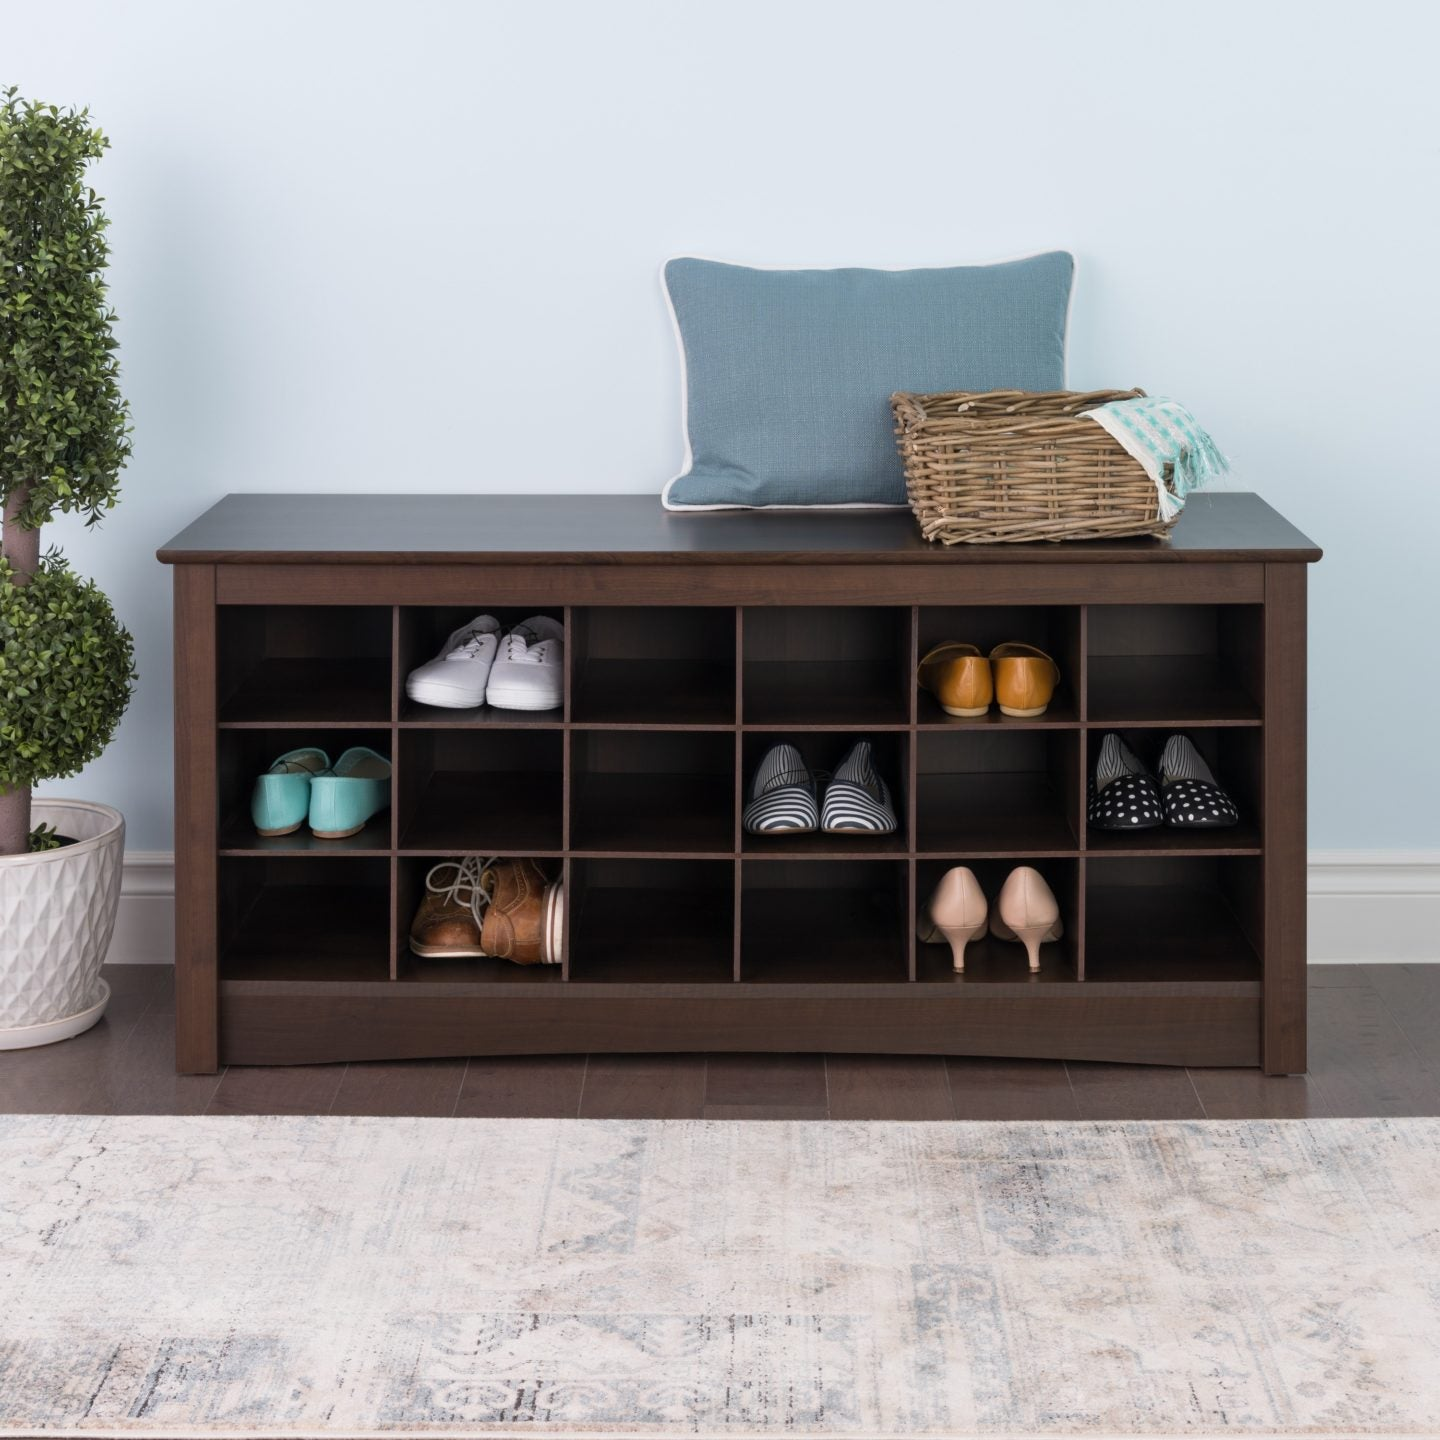 Shoe storage bench with shoes